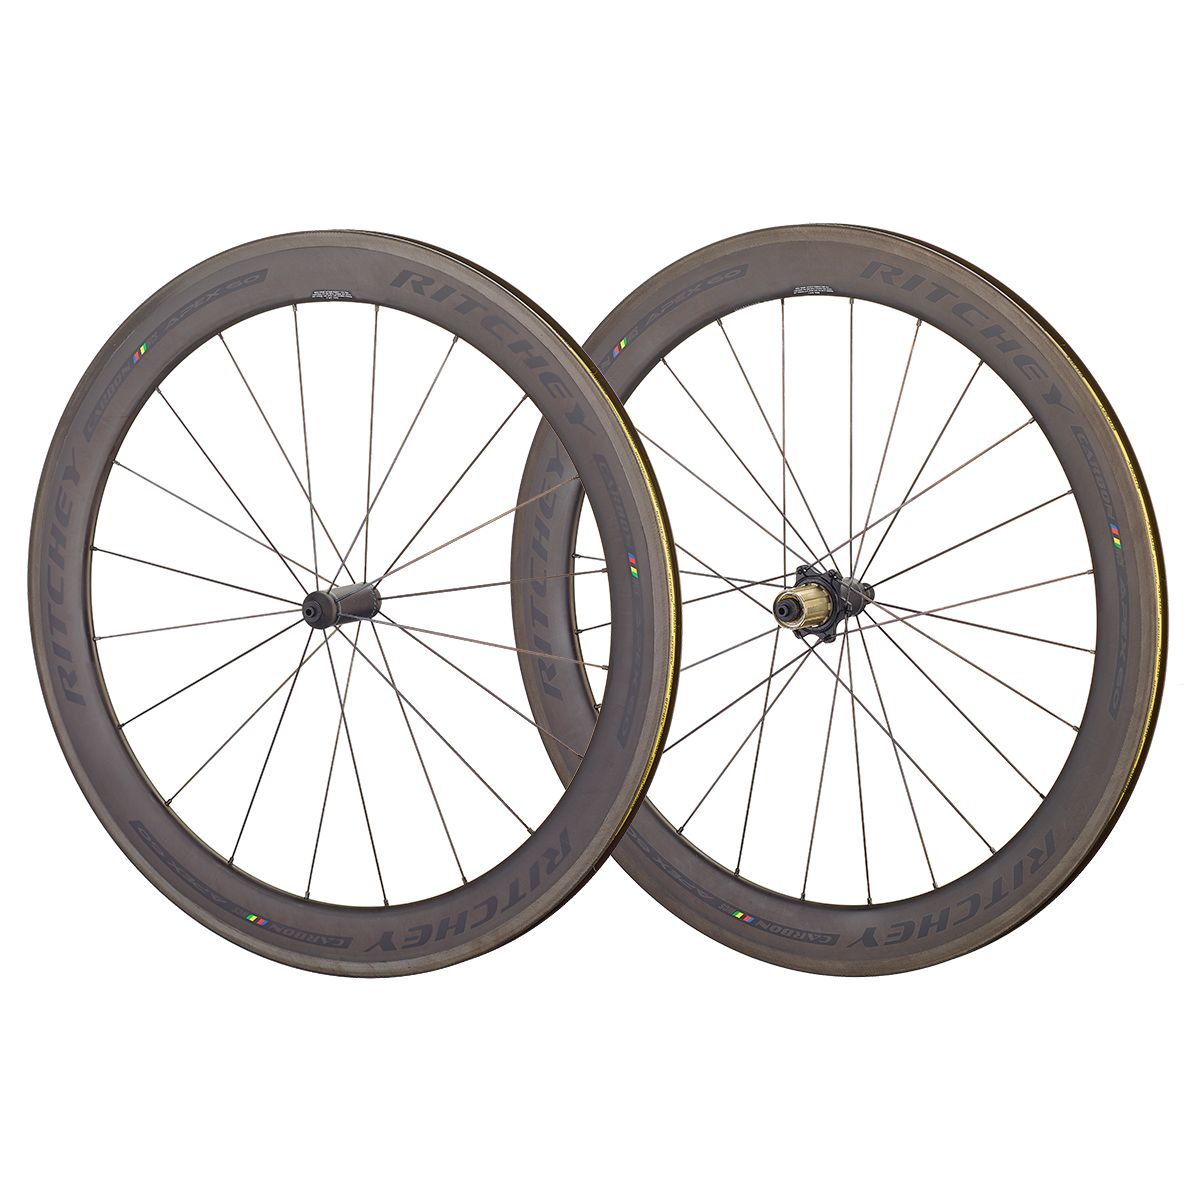 APEX II 60 WCS CARBON CLINCHER 28